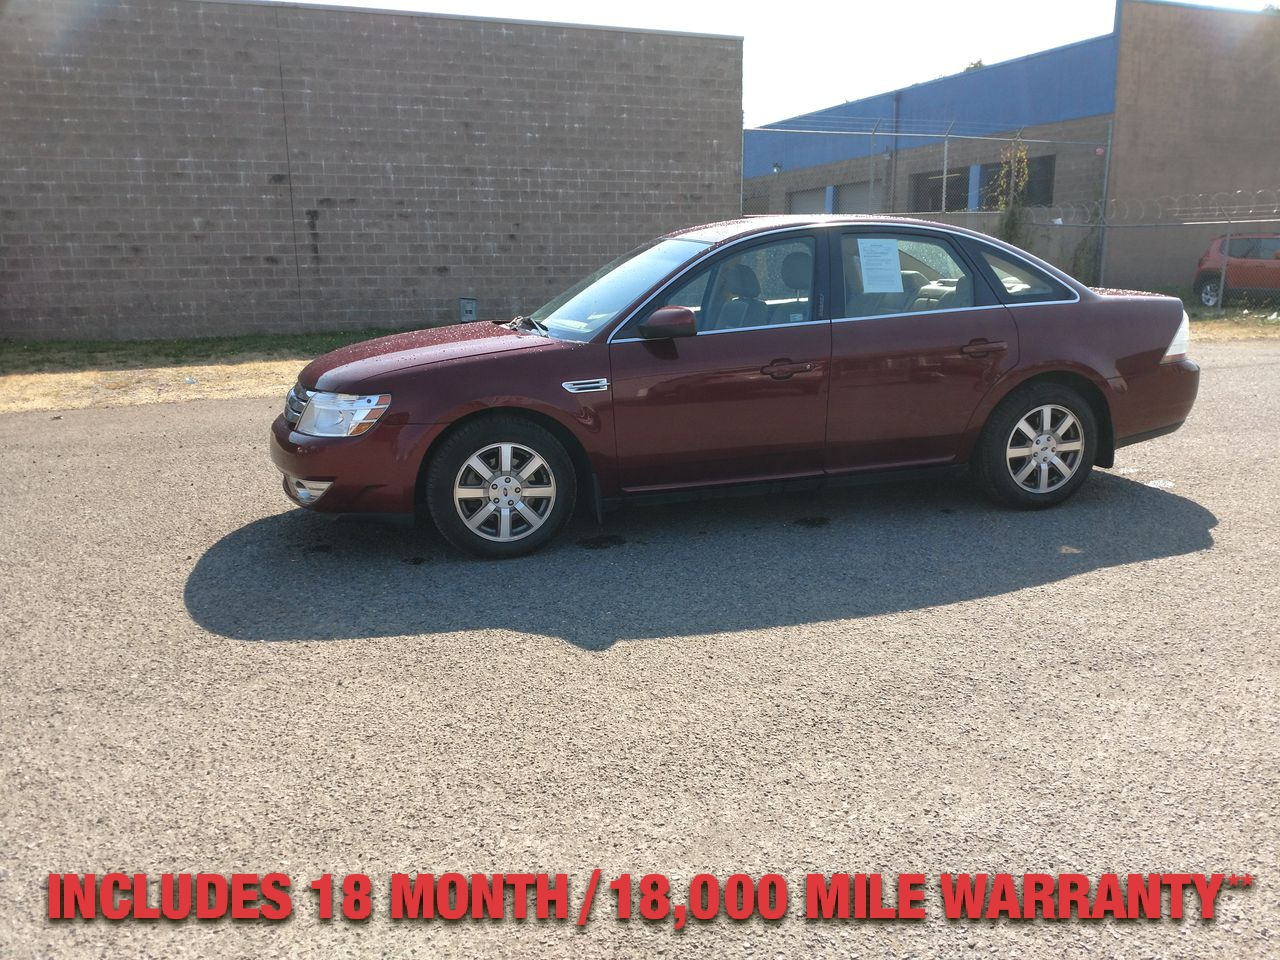 Pre-Owned 2008 FORD TAURUS SEL Sedan